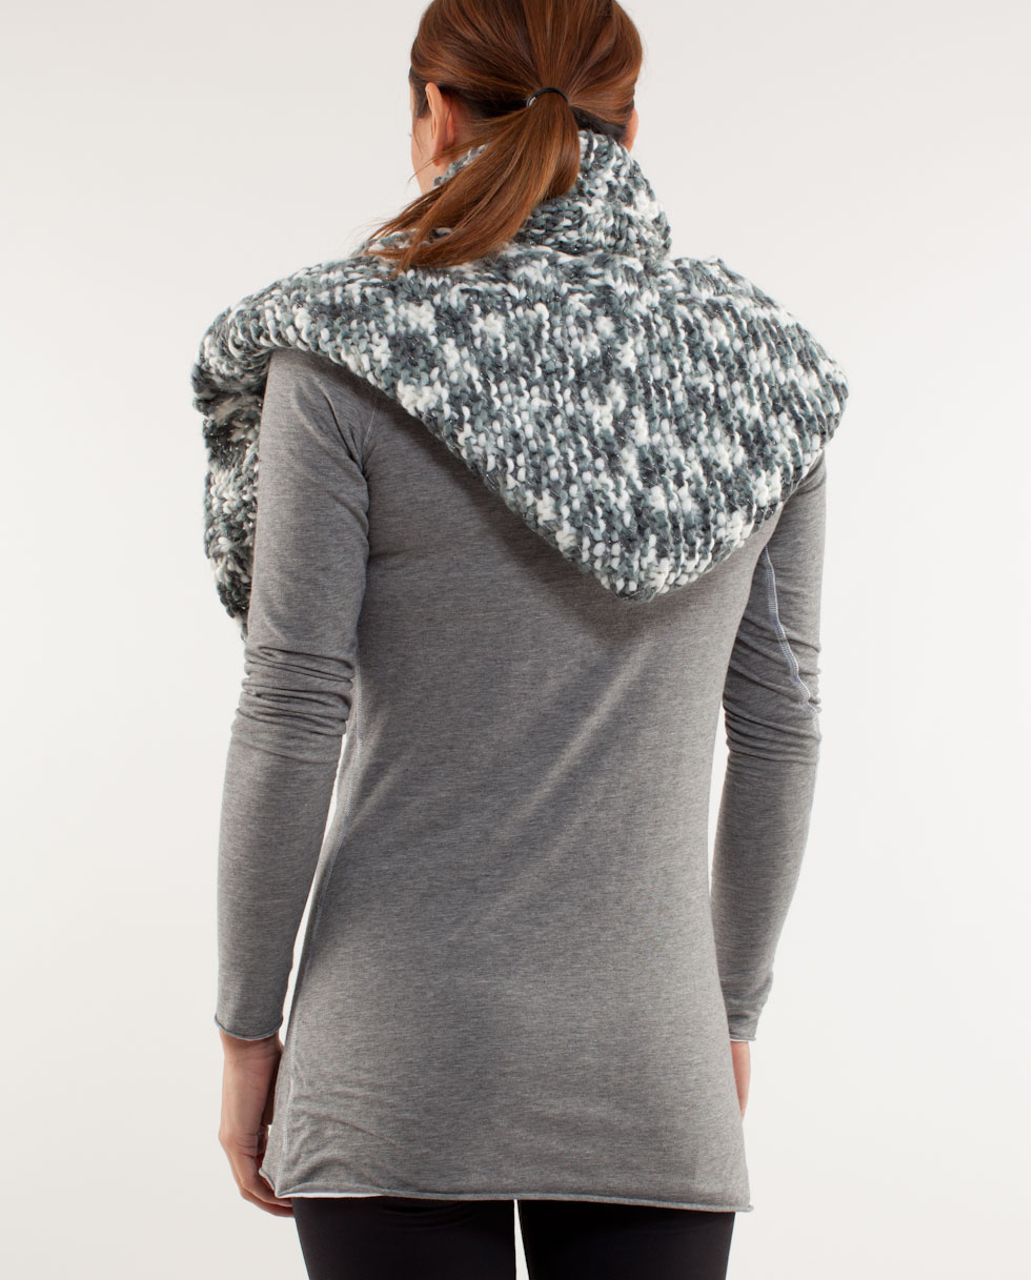 Lululemon Hickey Hider - Coal Blurred Grey White Space Dye